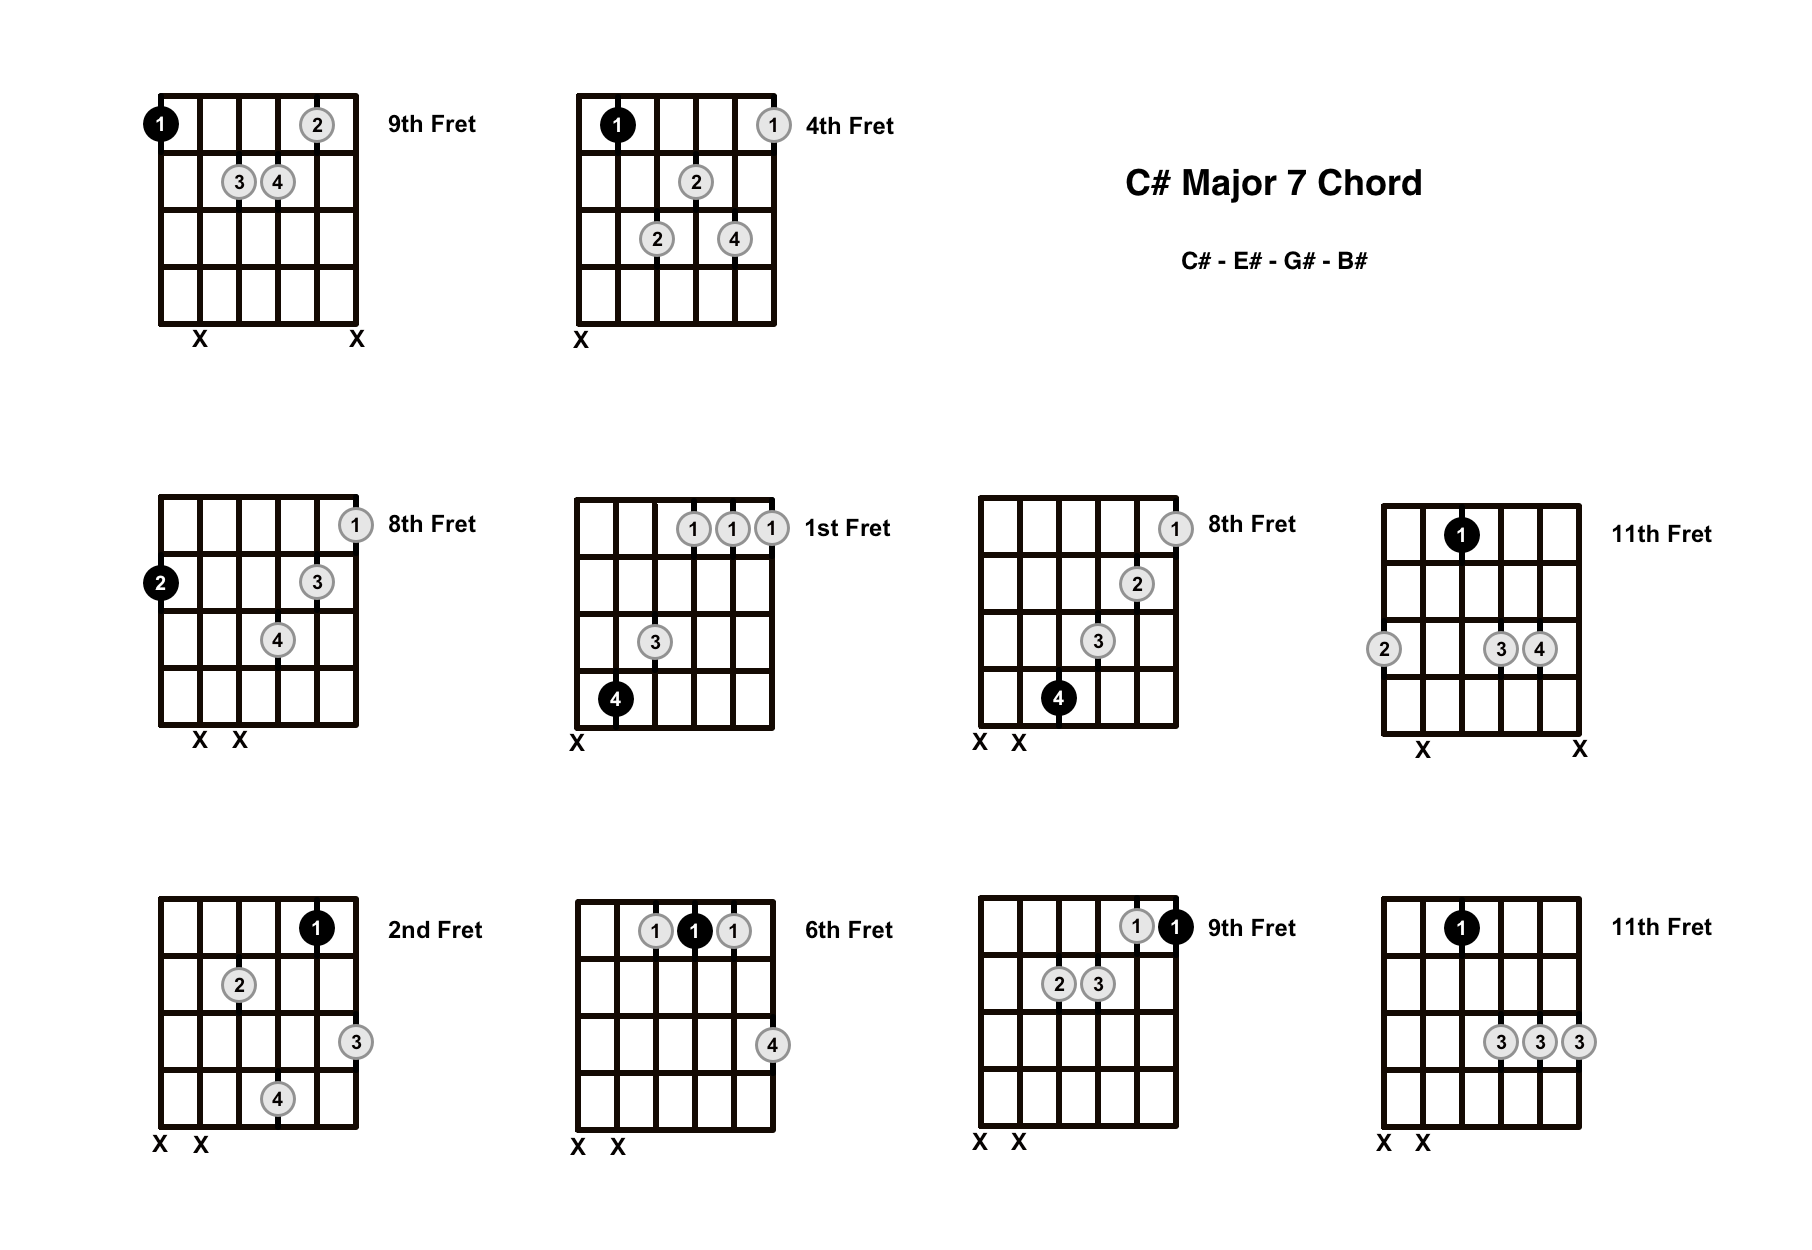 C Sharp Major 7 Chord On The Guitar (C# Maj 7) – Diagrams, Finger Positions and Theory